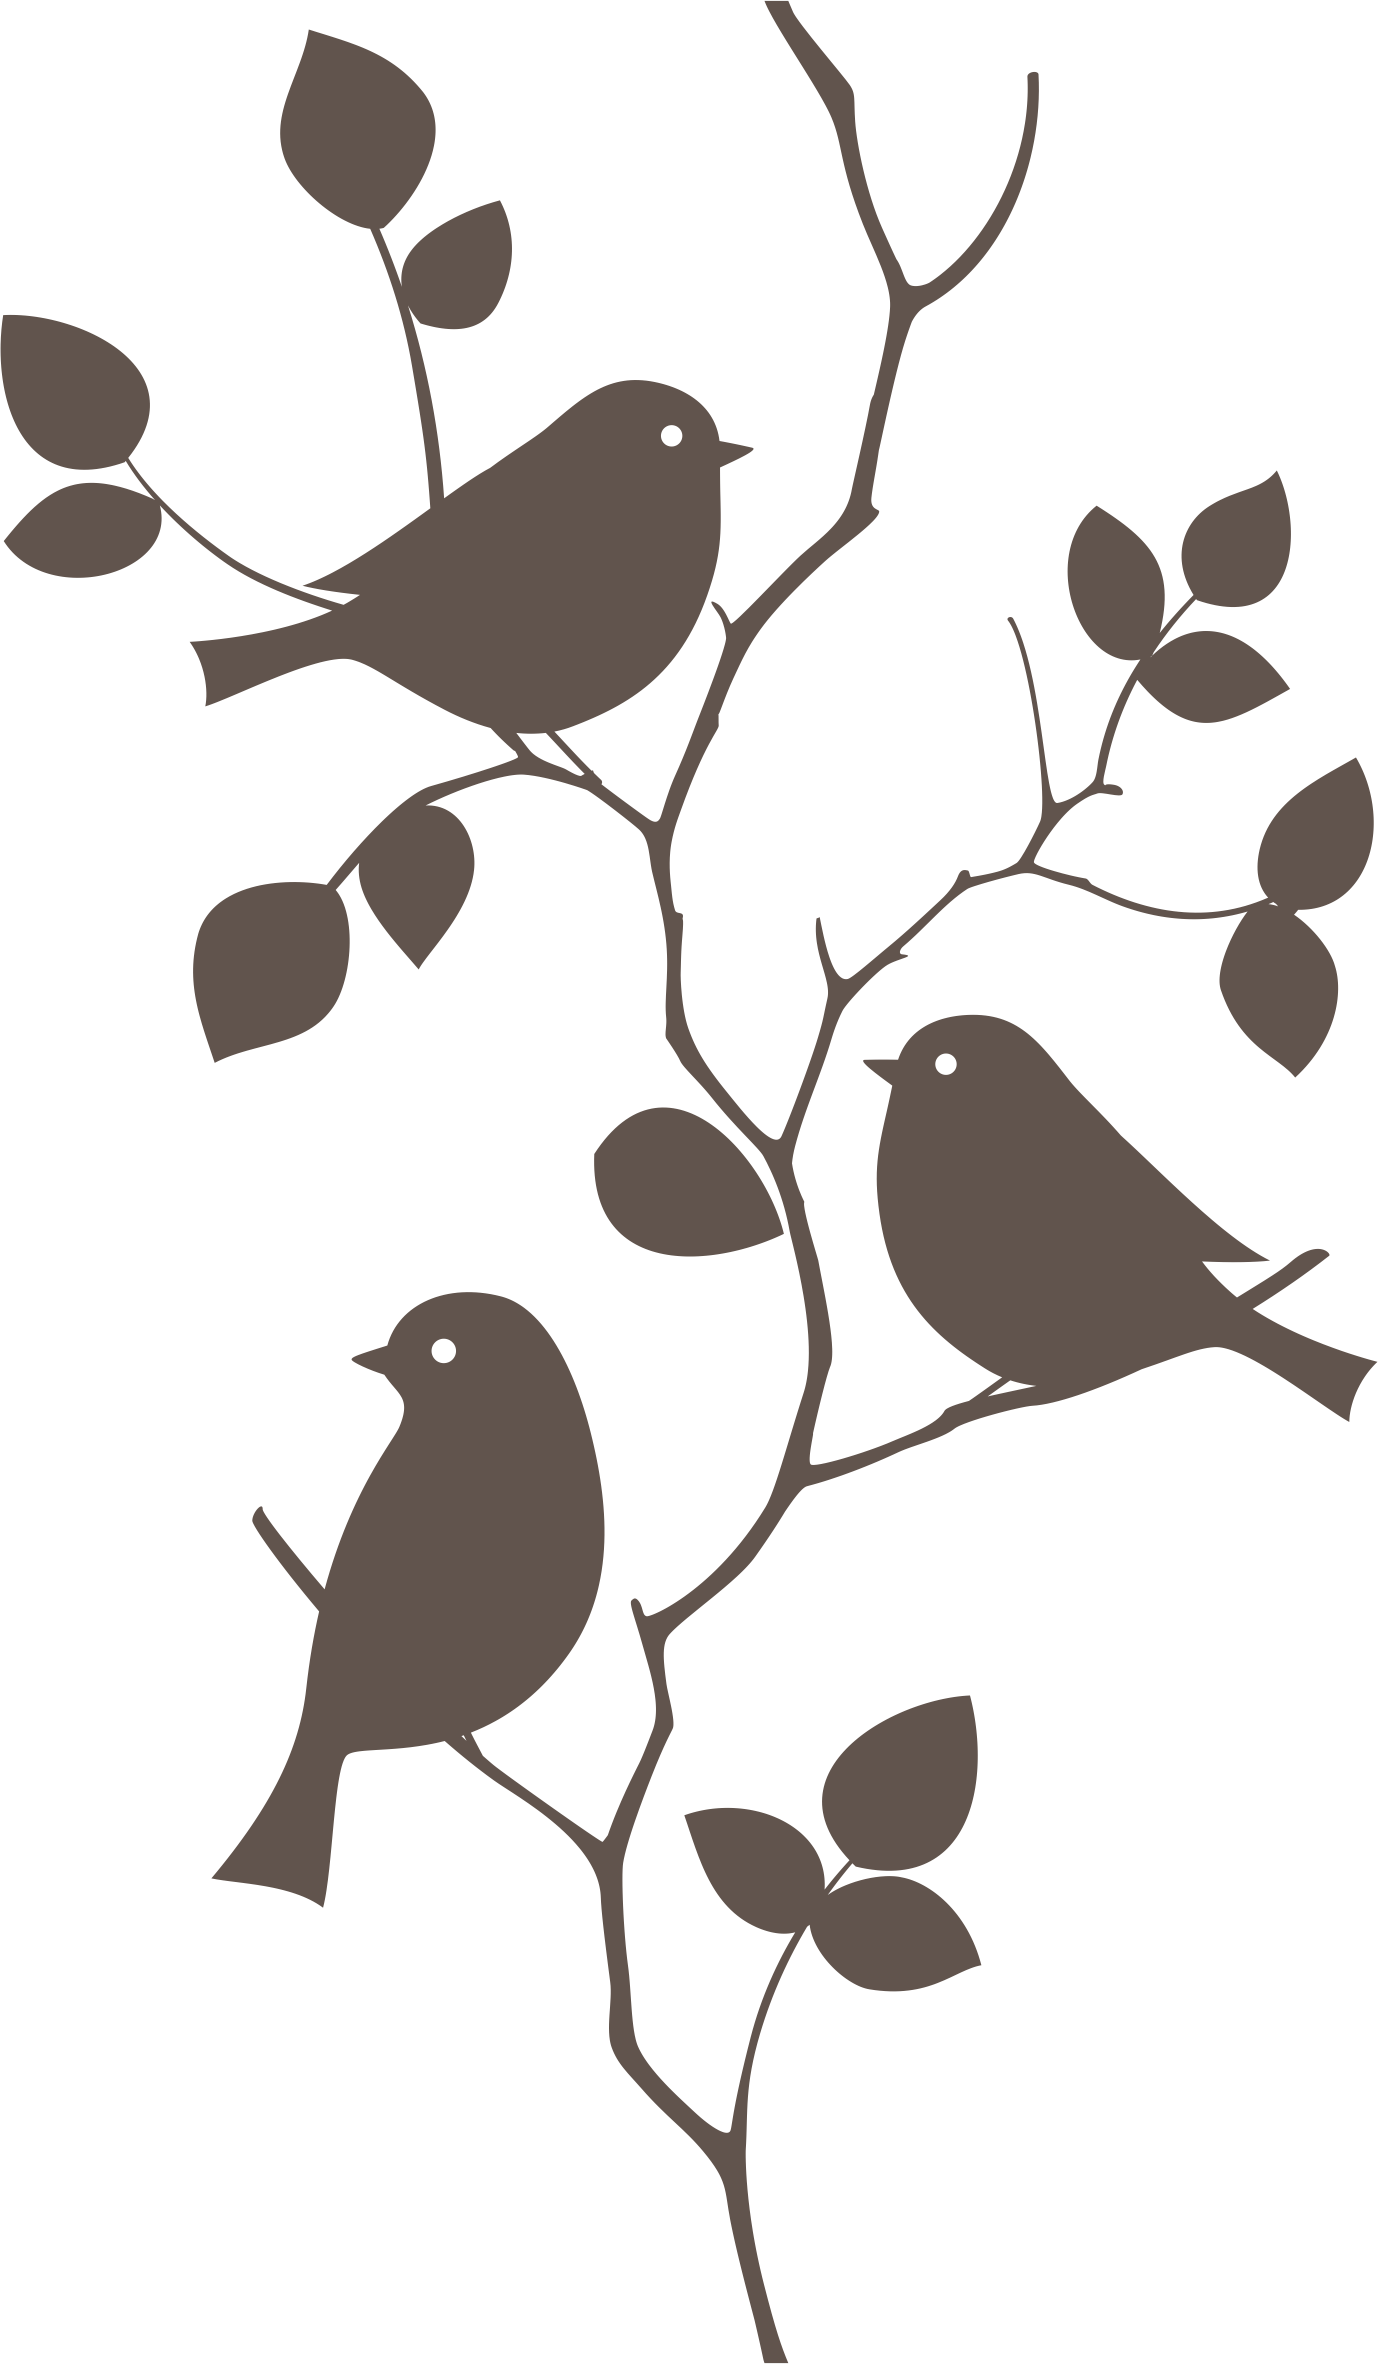 Bird Wall Decal Mural Sticker Vector Graphics Stone Wall Art Installations Png Download 1378 2364 Free Transparent Bird Png Download Clip Art Library